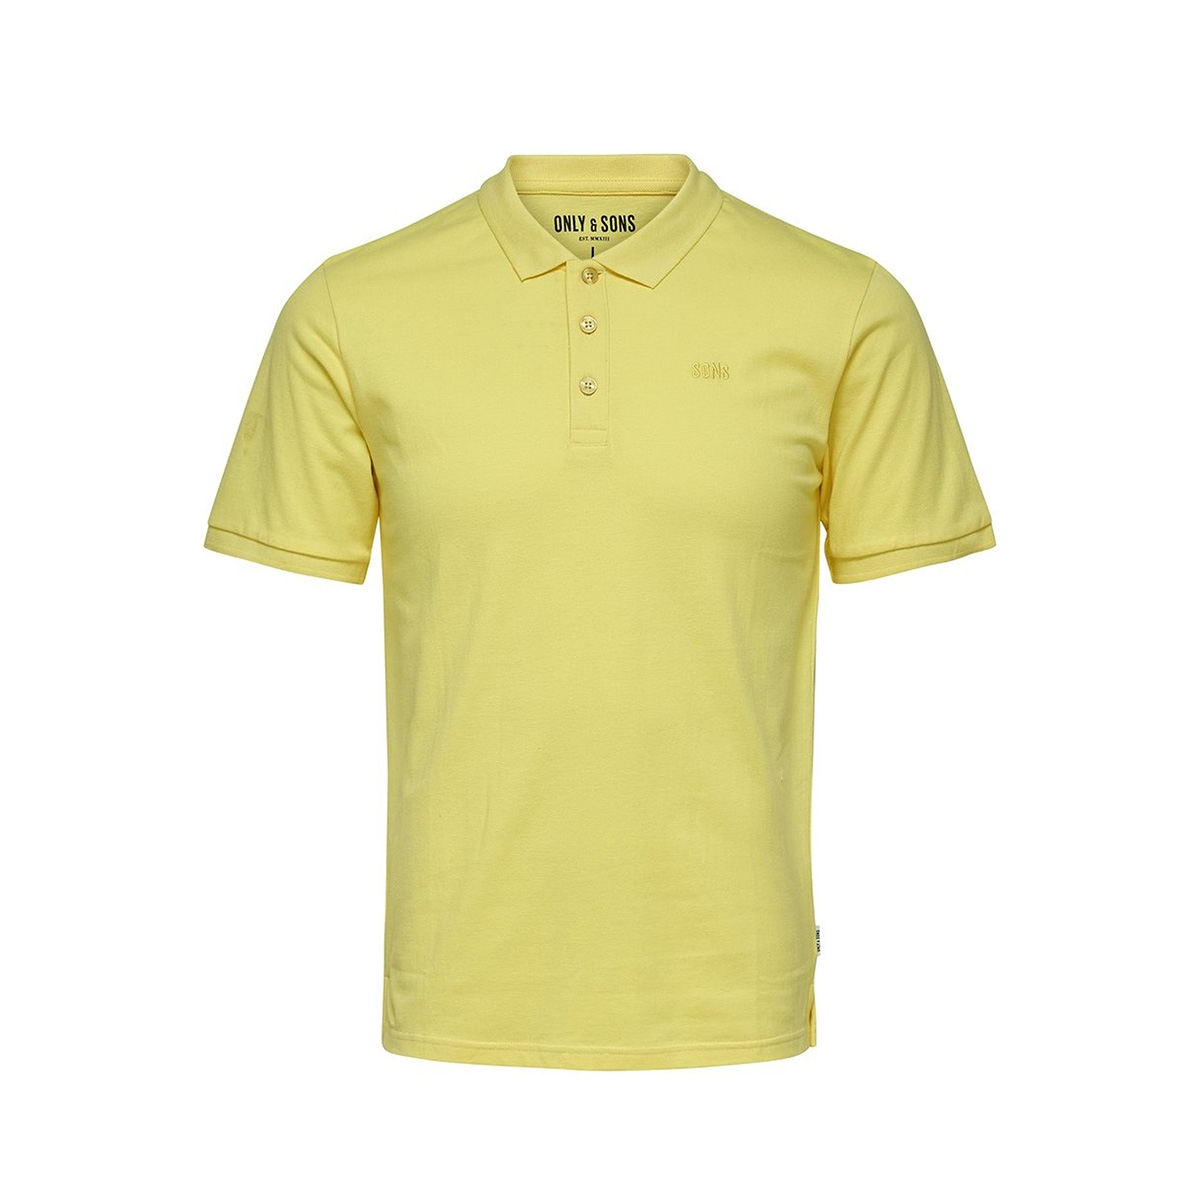 onsscott pique polo noos 22013117 only & sons polo mellow yellow